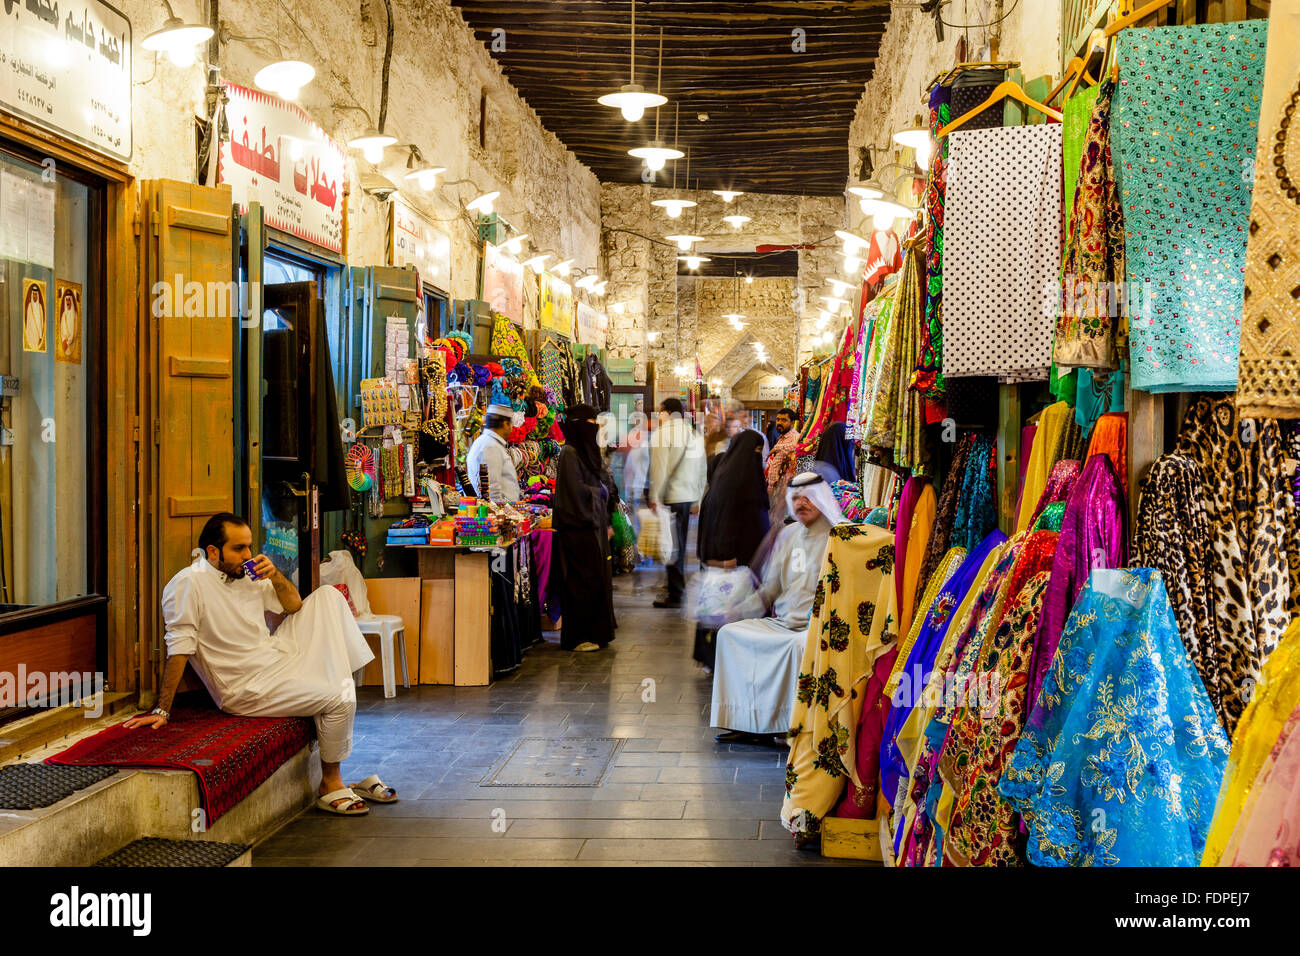 Colourful Shops In The Souk Waqif, Doha, Qatar - Stock Image